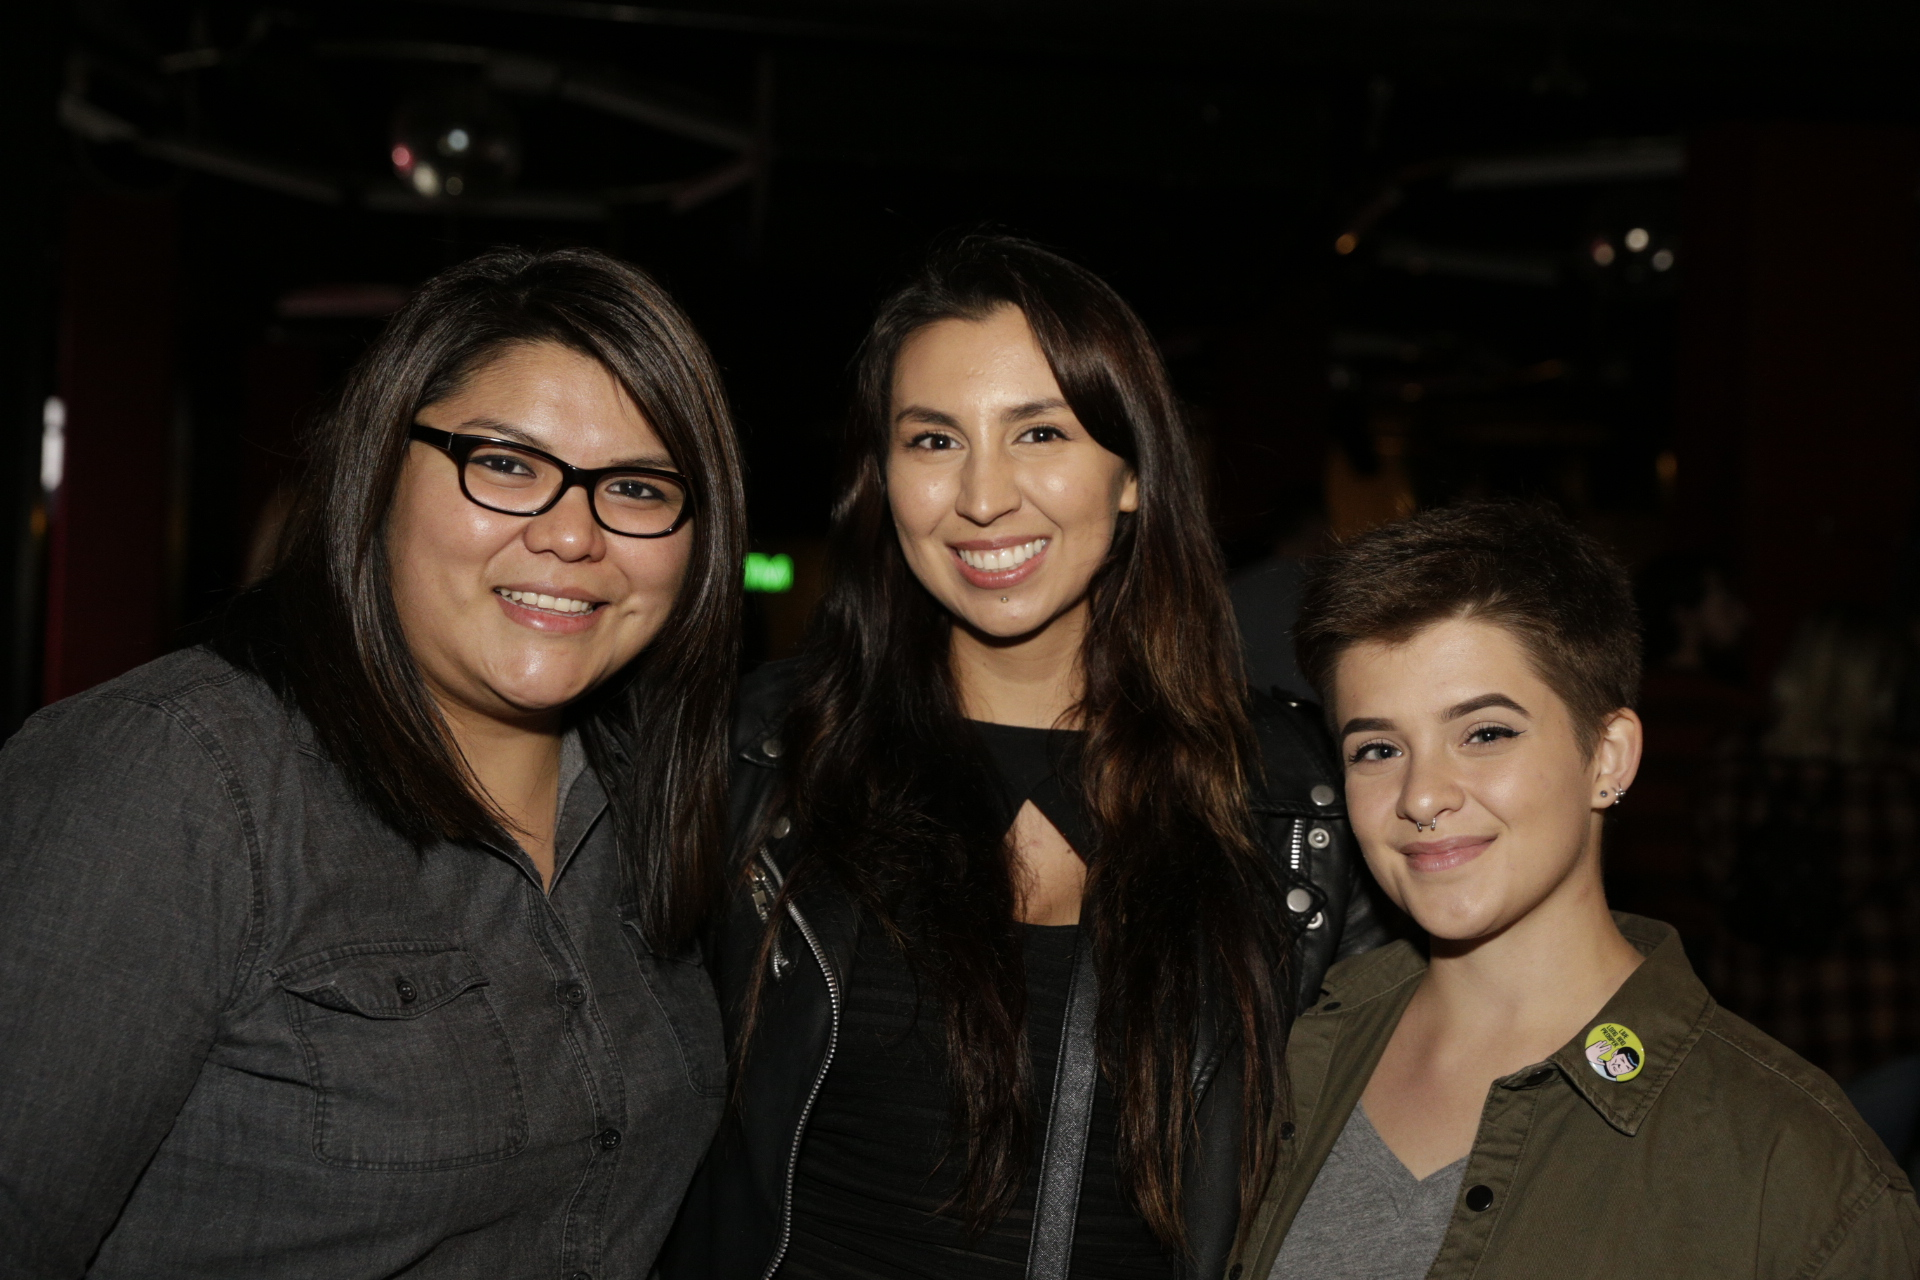 Lauren Bronch, Cora Burchett and Amanda Francom having a night out to see Tegan and Sara. Photo: @Lmsorenson